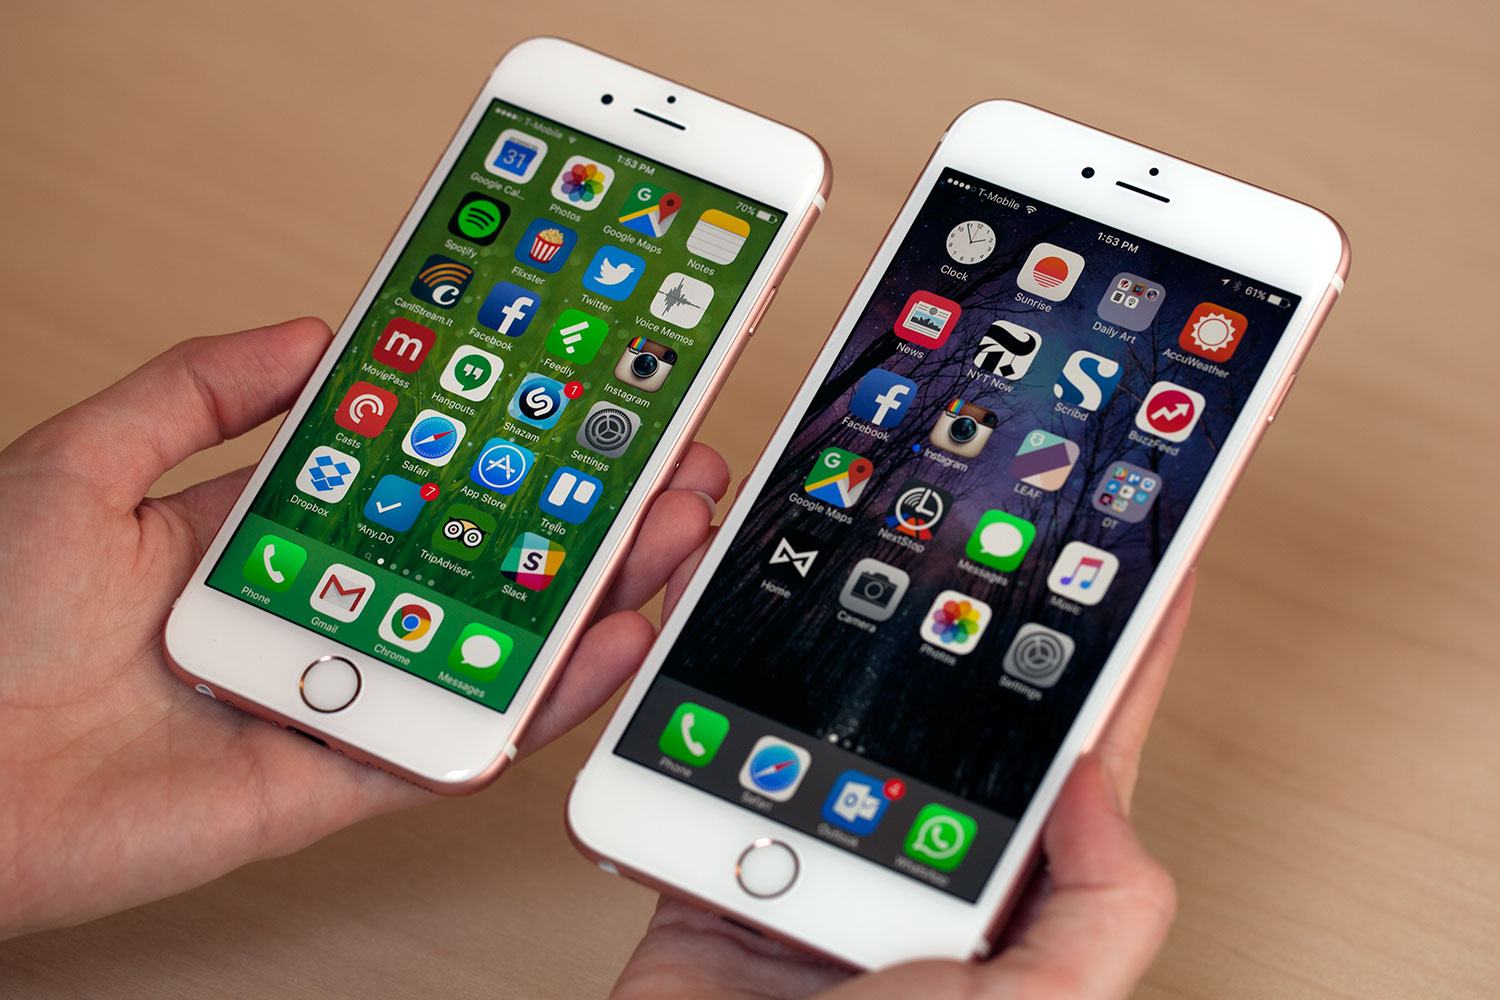 Report: iPhone 6S and 6S Plus sales are healthy so far but